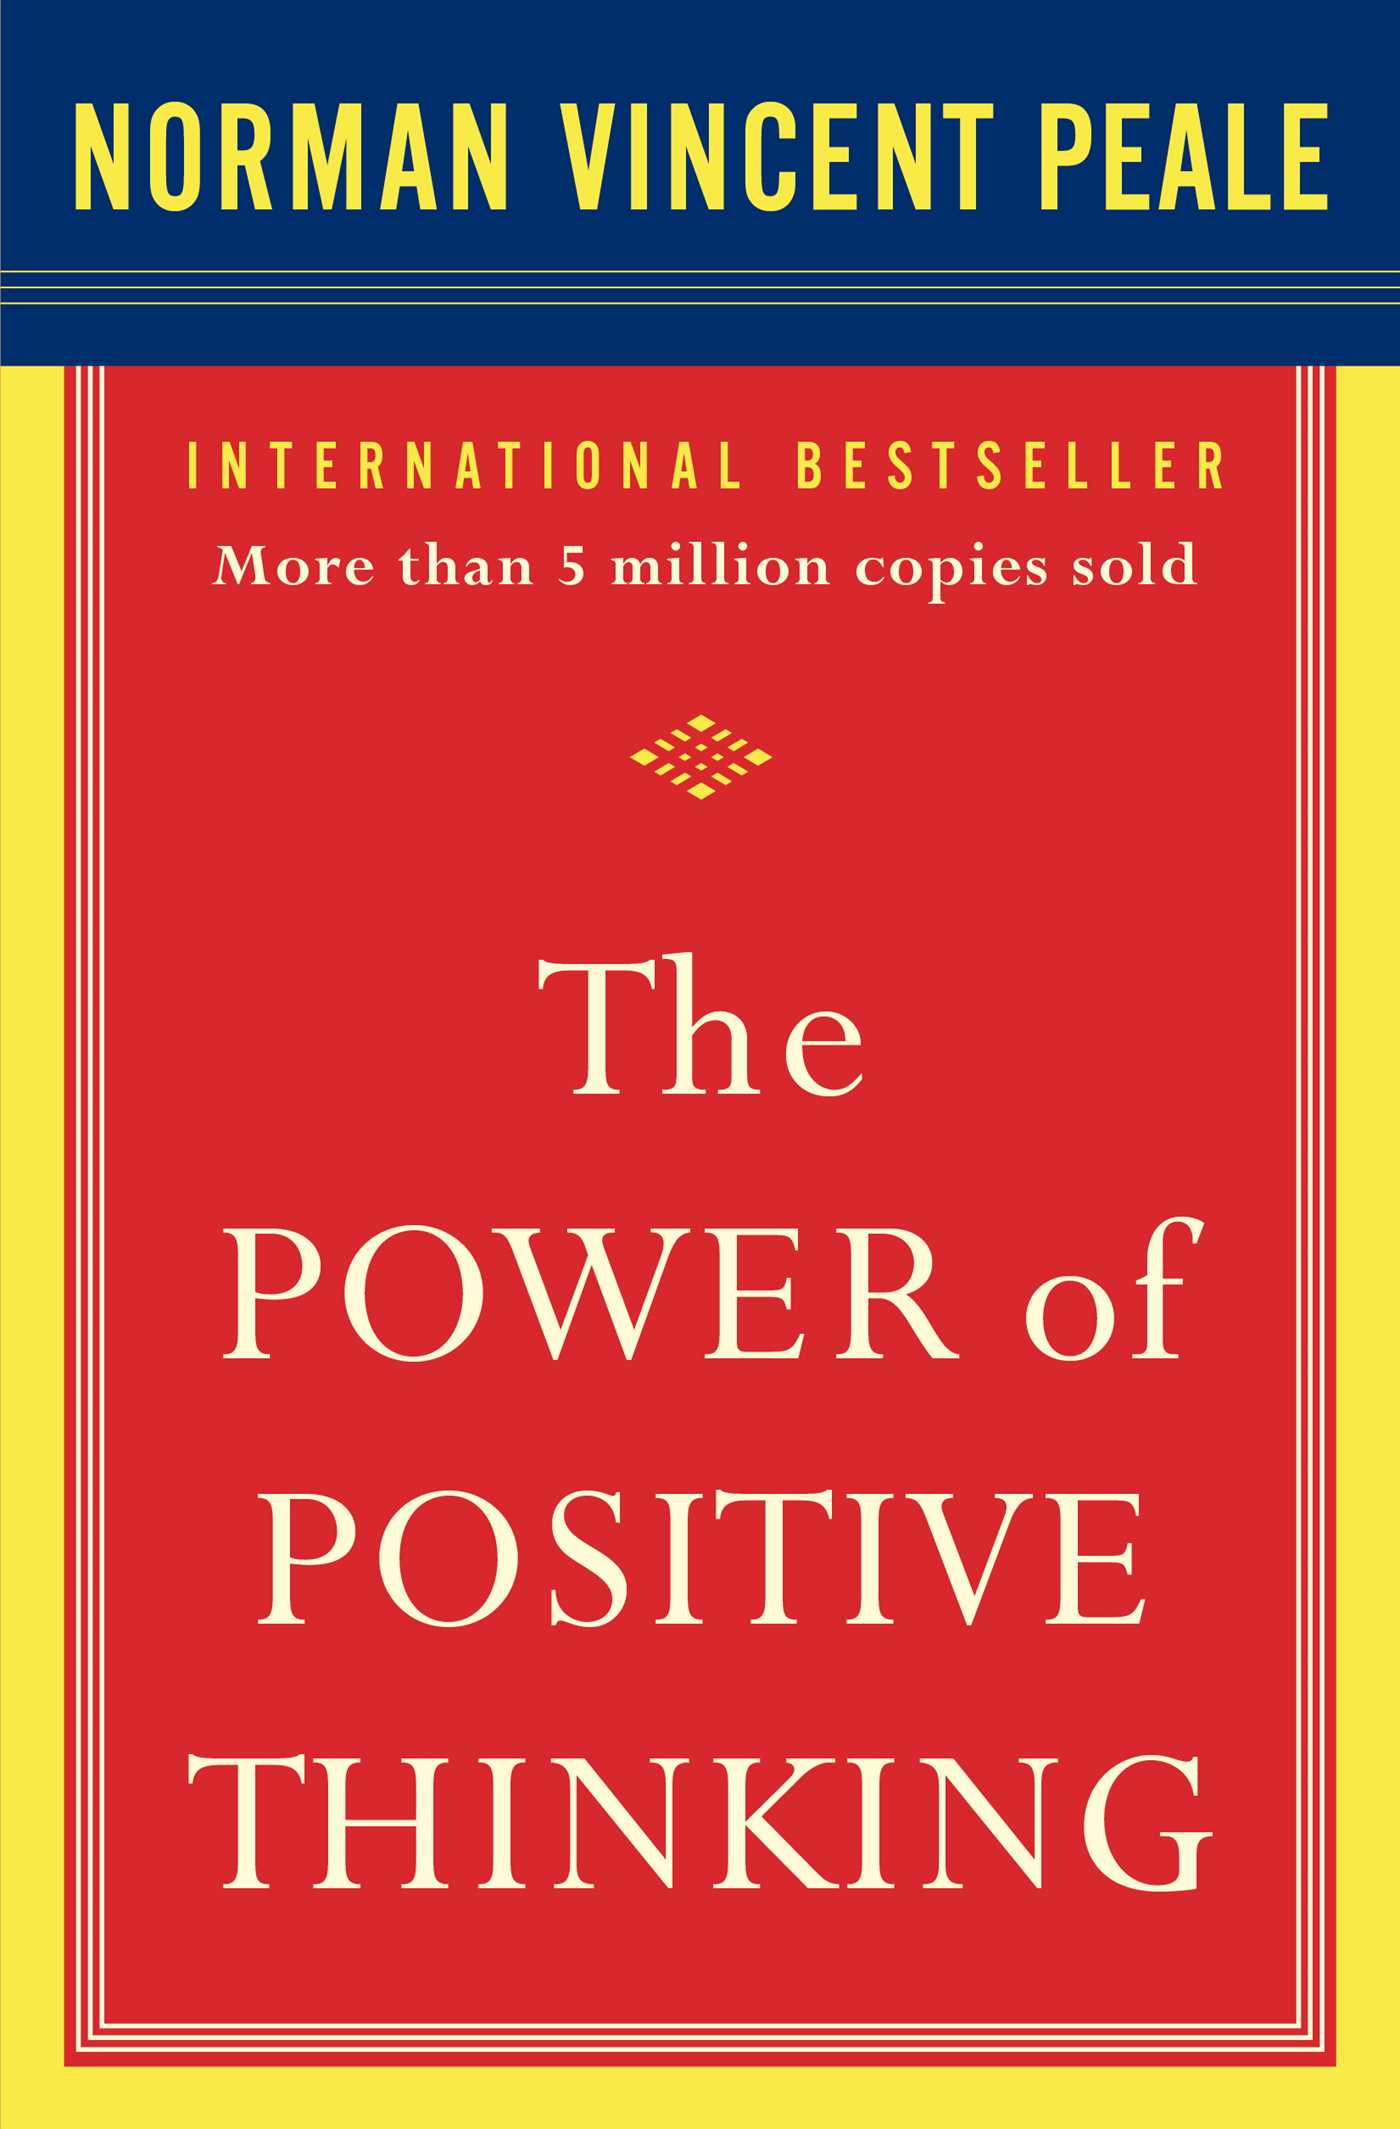 The Power of Positive Thinking   Author: Norman Vincent Peale  Published by: Fireside Books  Genres: Self-help, personal development, business   Available at: goodreads.com